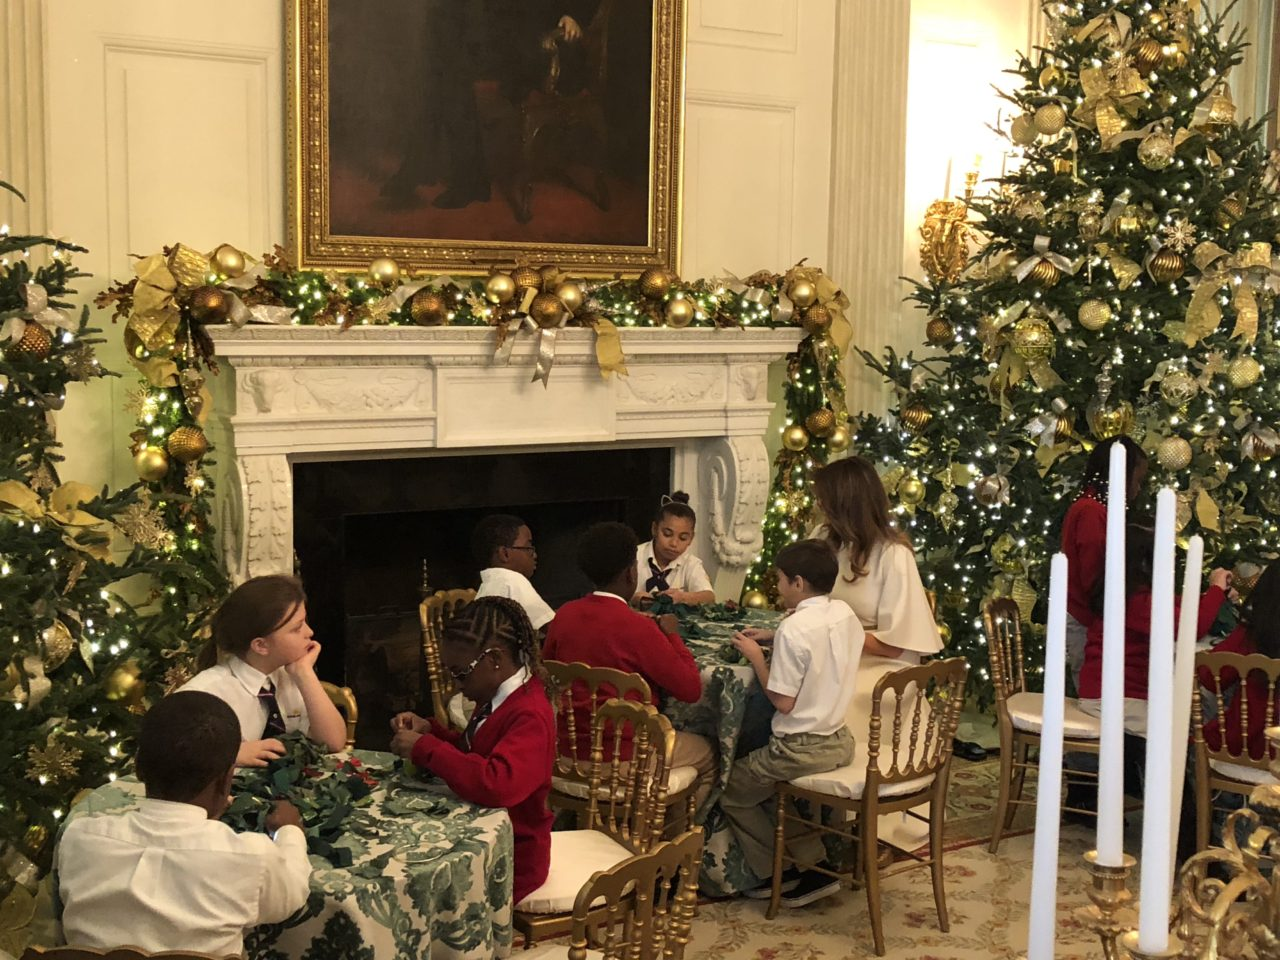 Melania Trump White House Christmas.Christmas Alive At White House As Melania Trump Welcomes